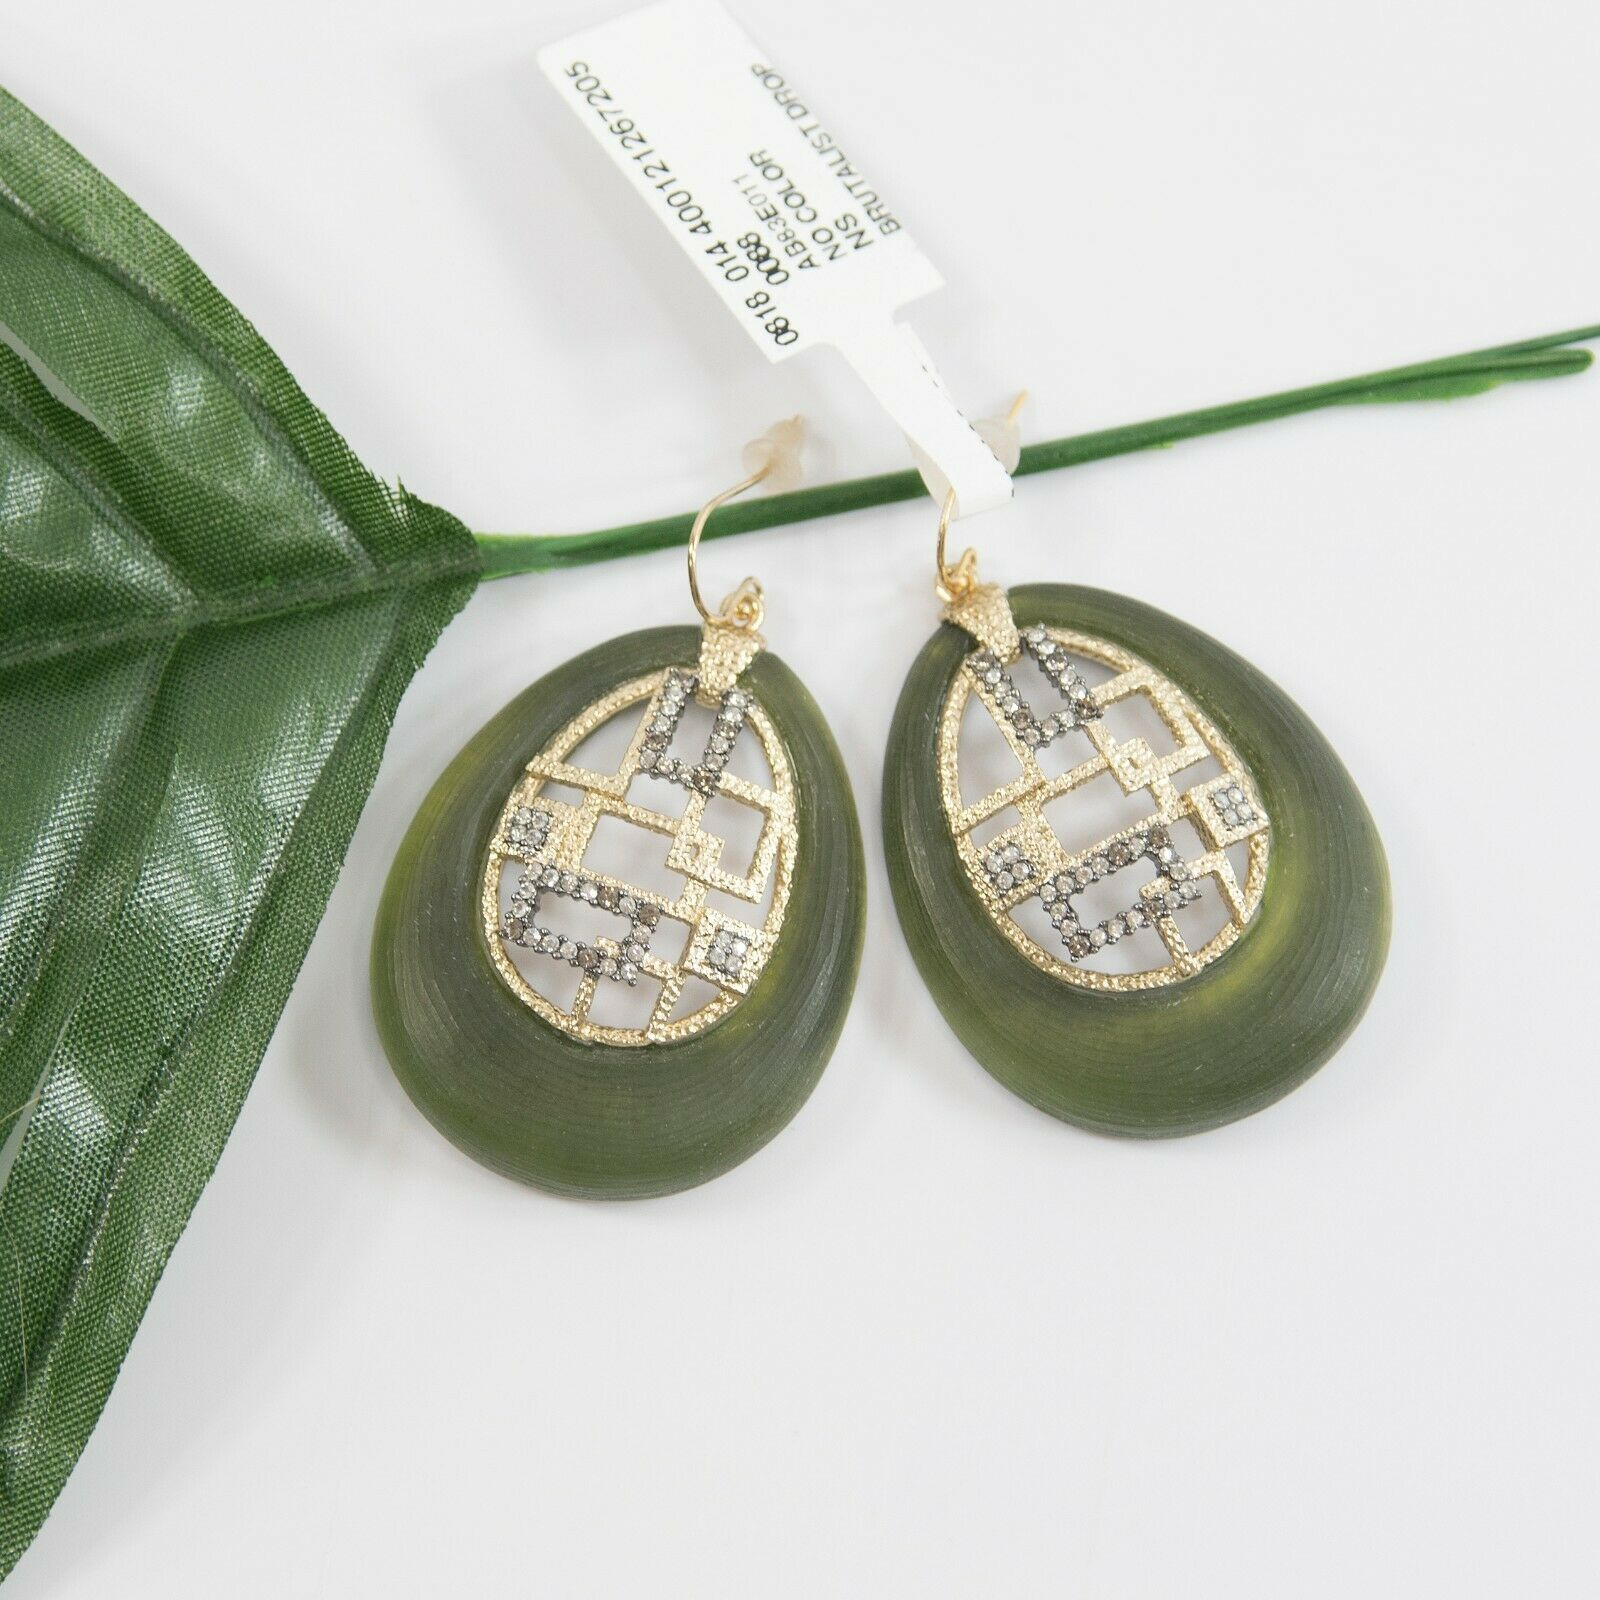 Primary image for Alexis Bittar Brutalist Olive Lucite Crystal 14k Gold Plated Drop Earrings NWT